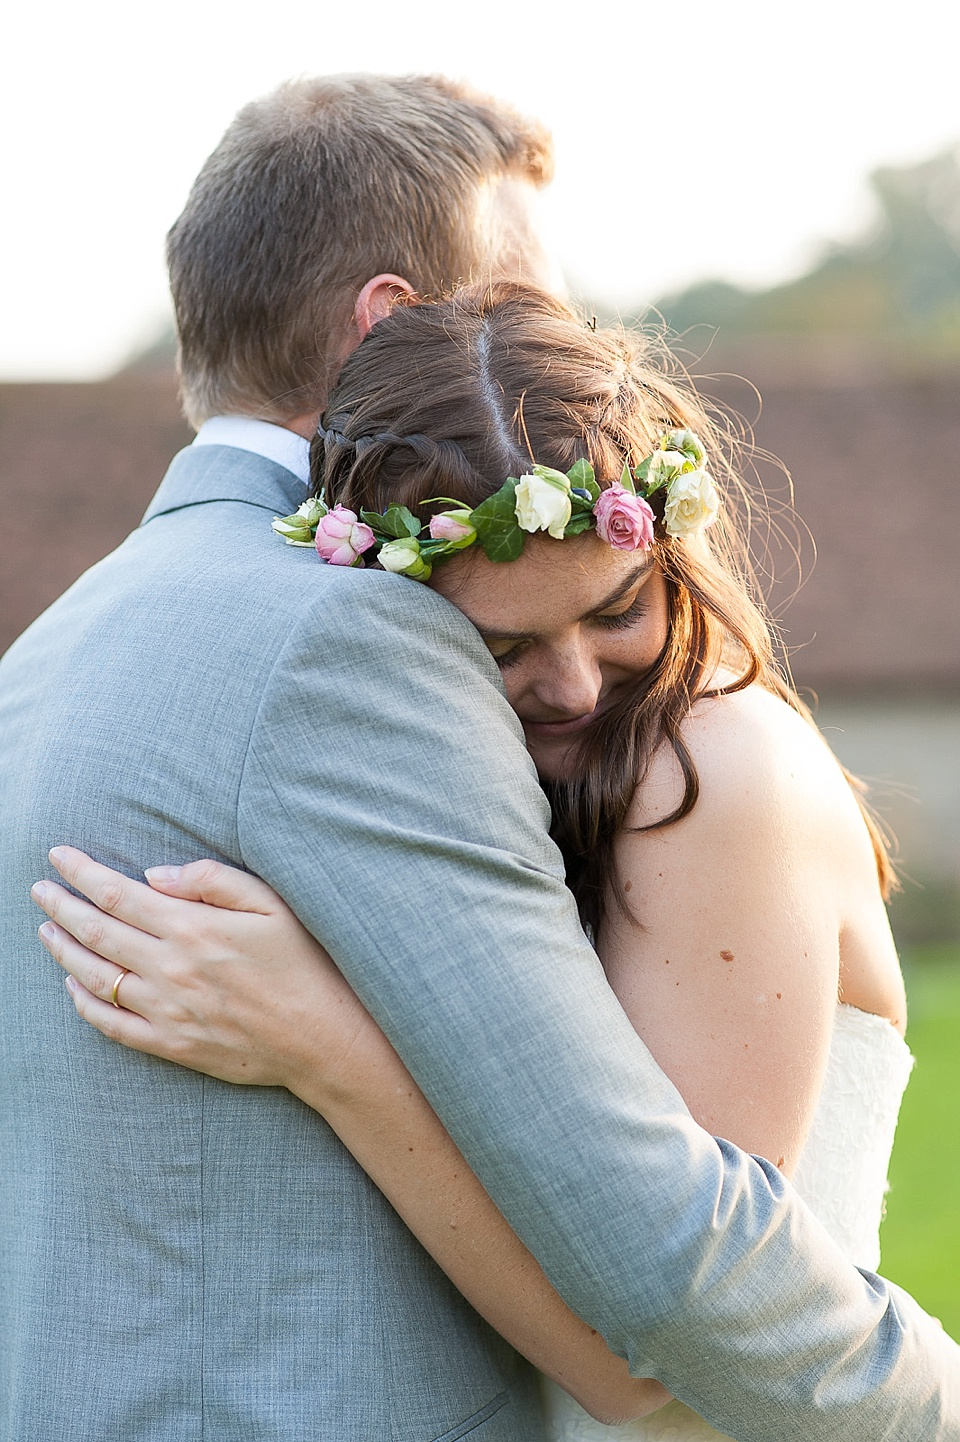 Close up wedding portrait at golden hour - English country garden wedding at the Walled Garden at Cowdray - Sussex wedding photographer © Fiona Kelly photography